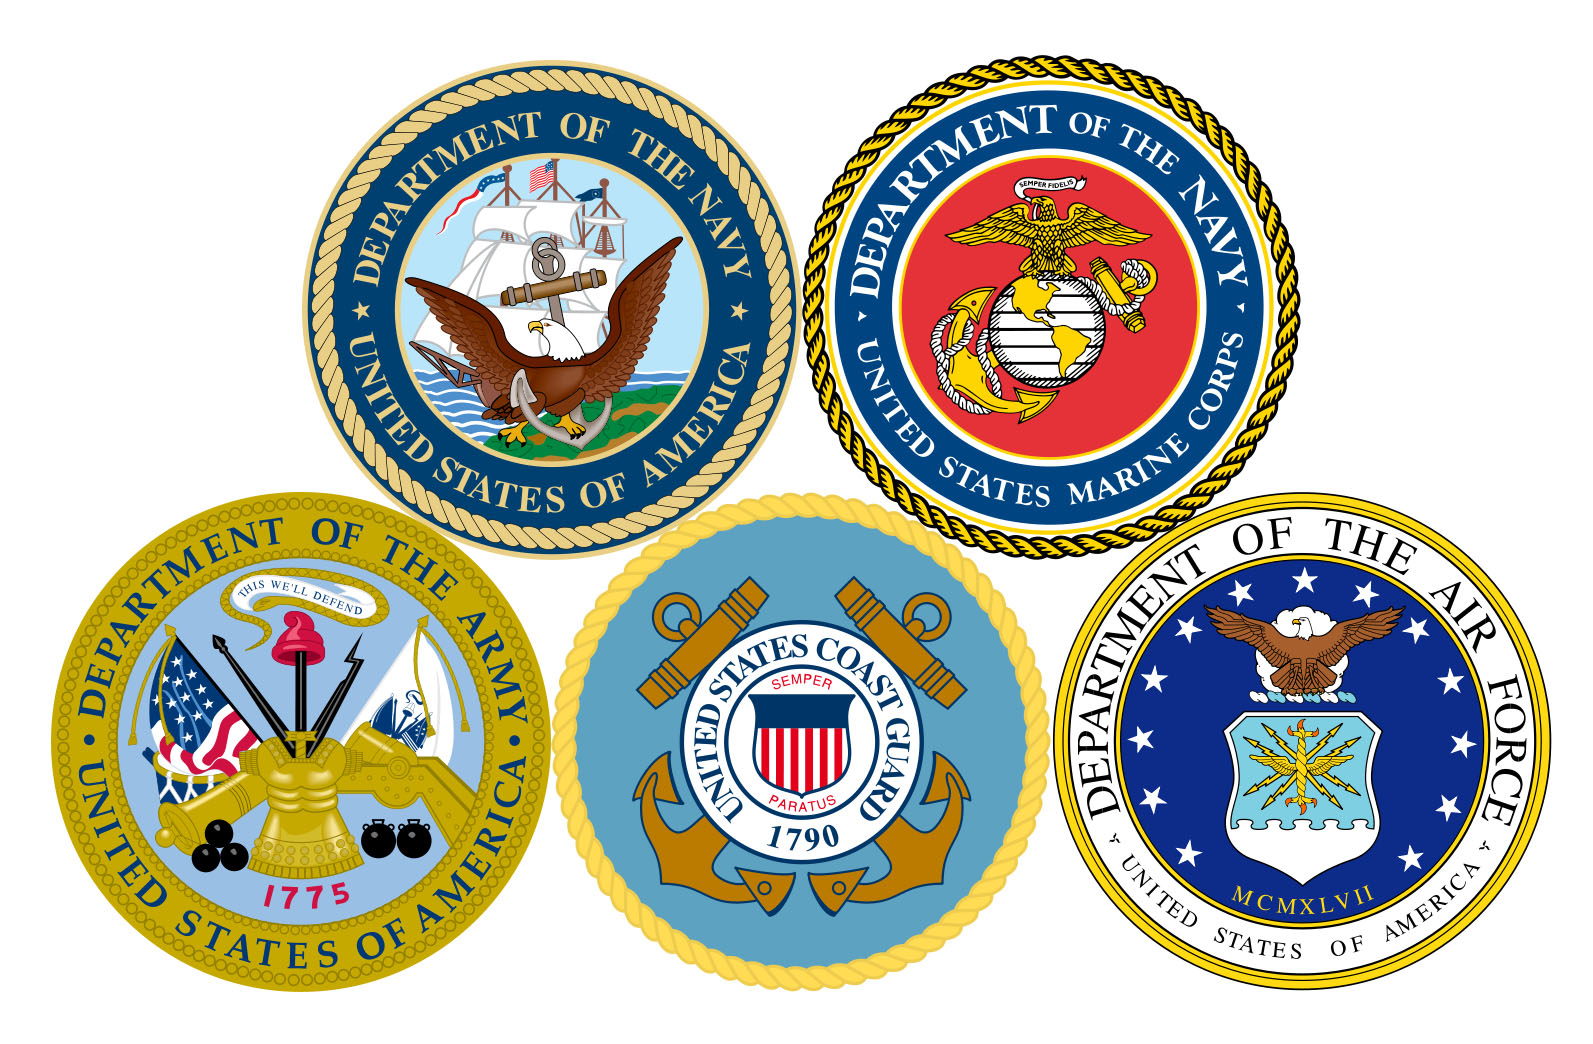 The five seals of the military branches including the navy, the marines, the air force, the cost guard and the army.